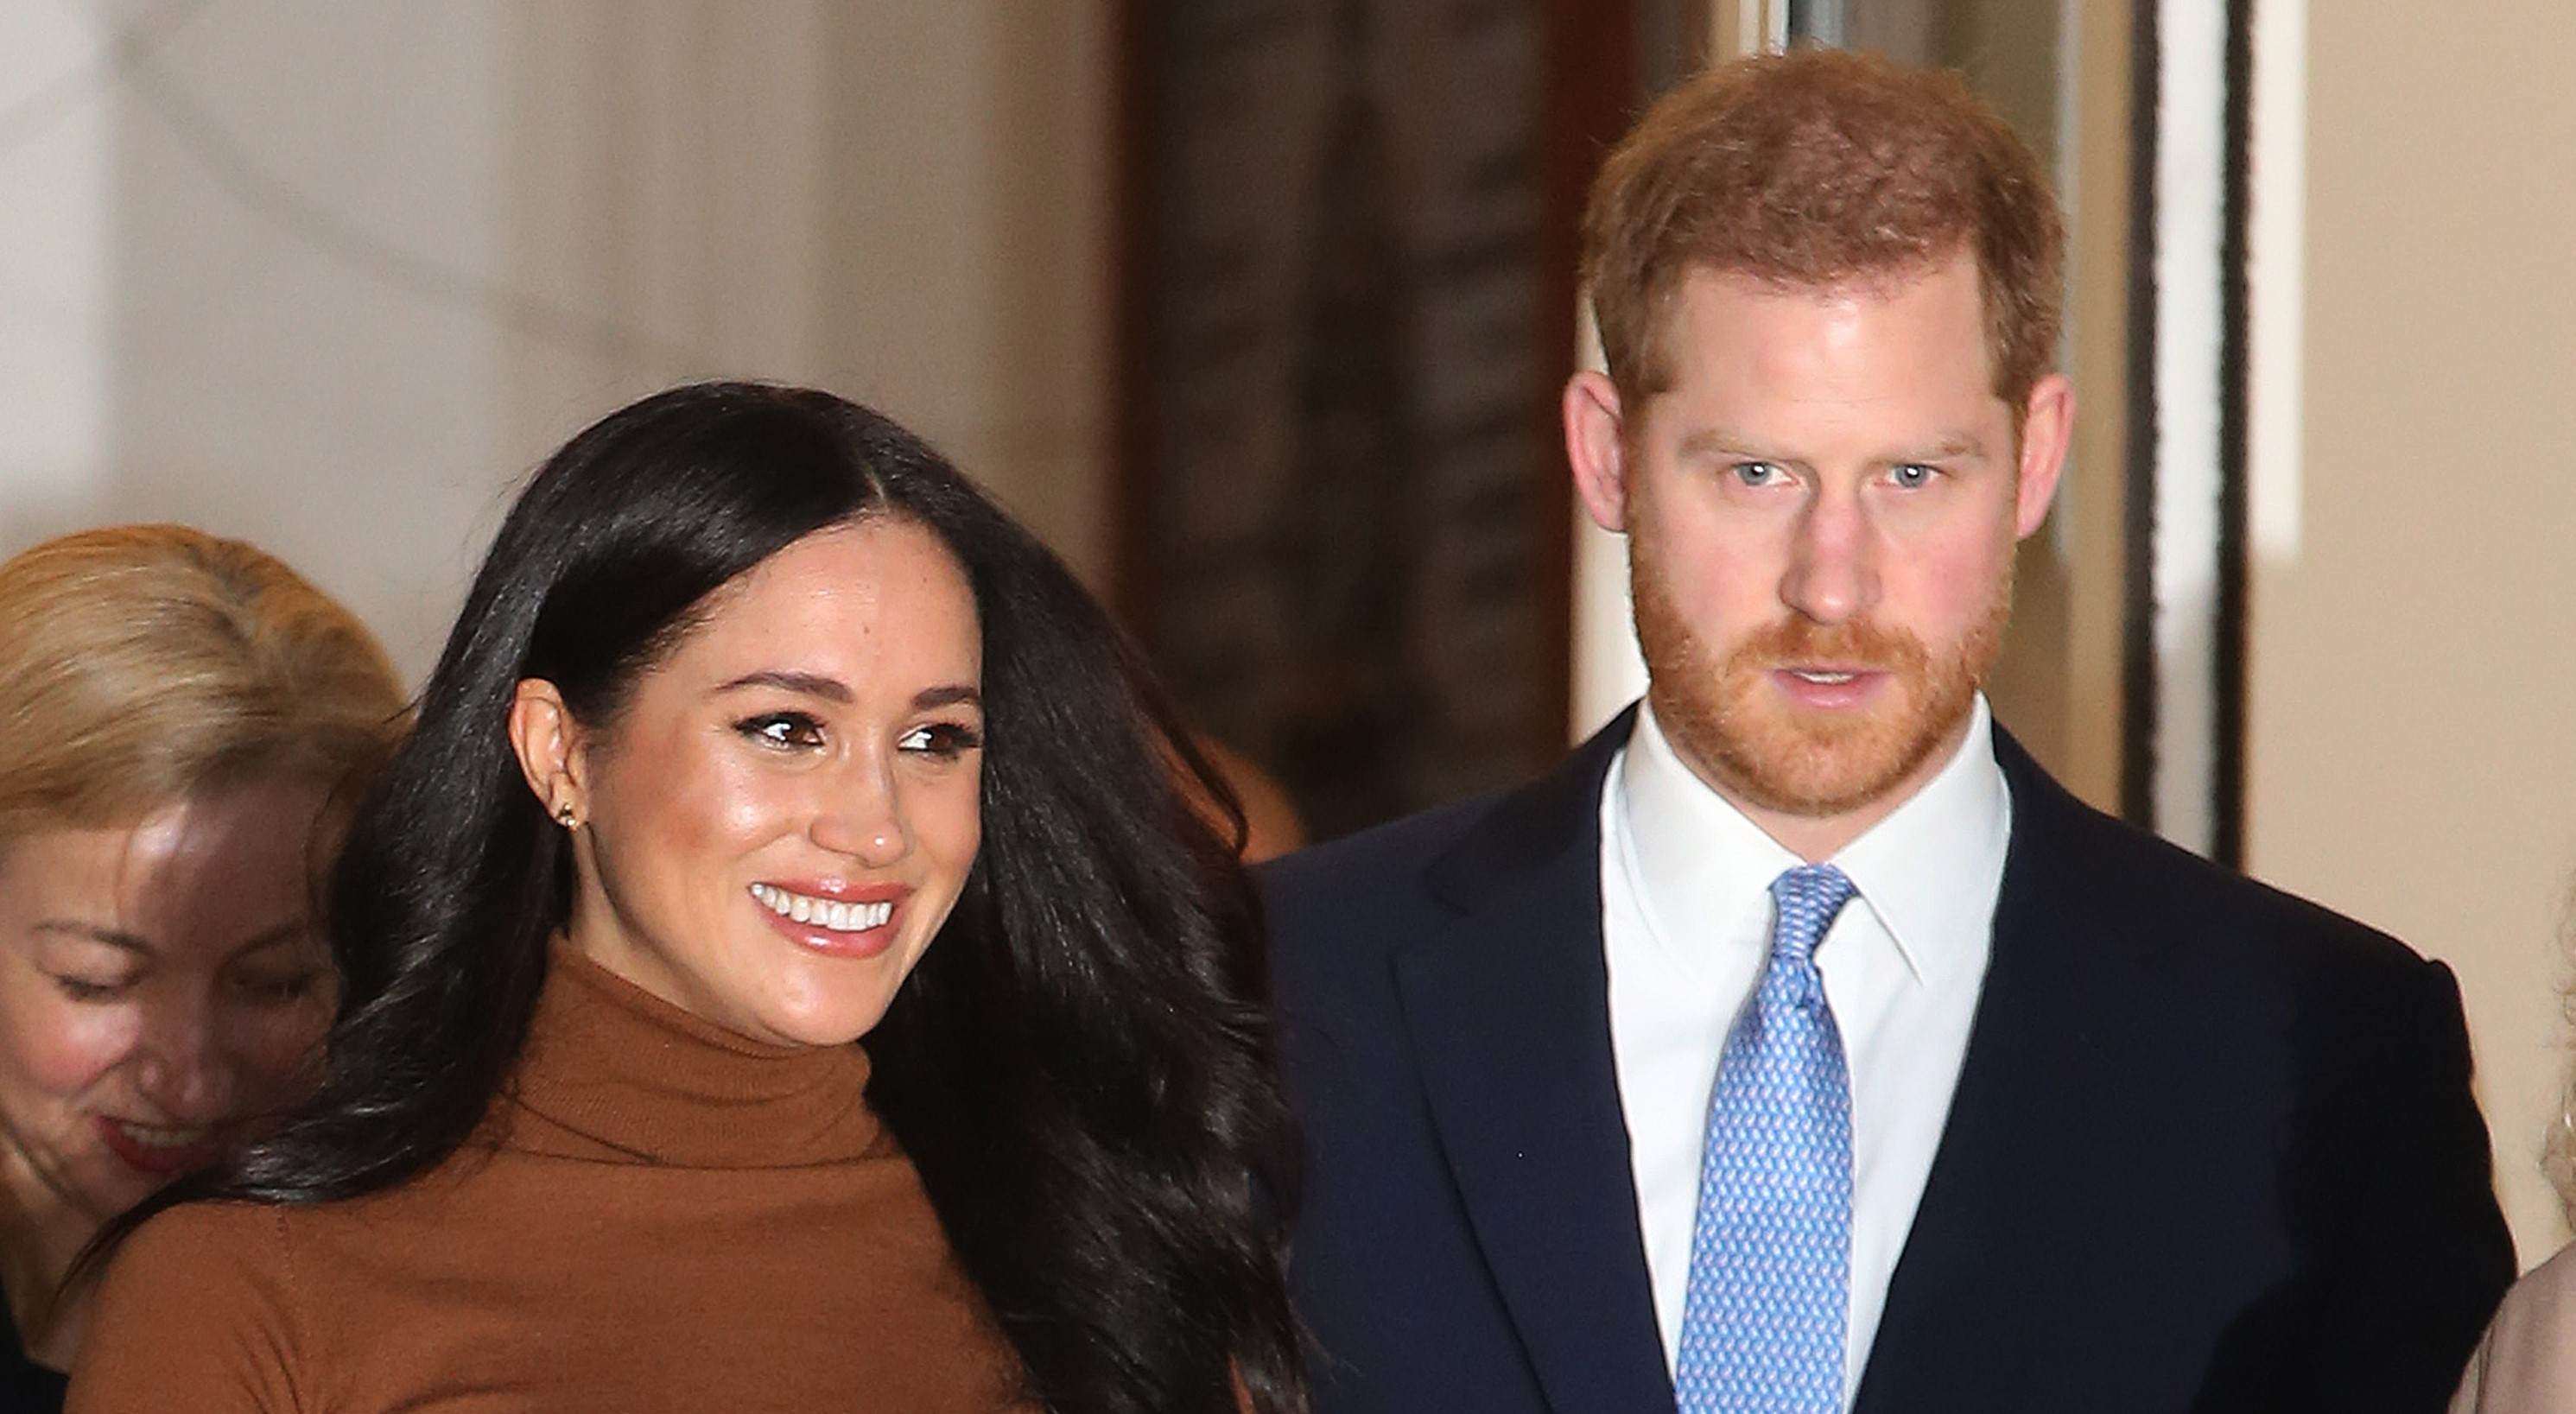 Meghan and Harry 'searching for LA home for the summer' after stepping back from royals